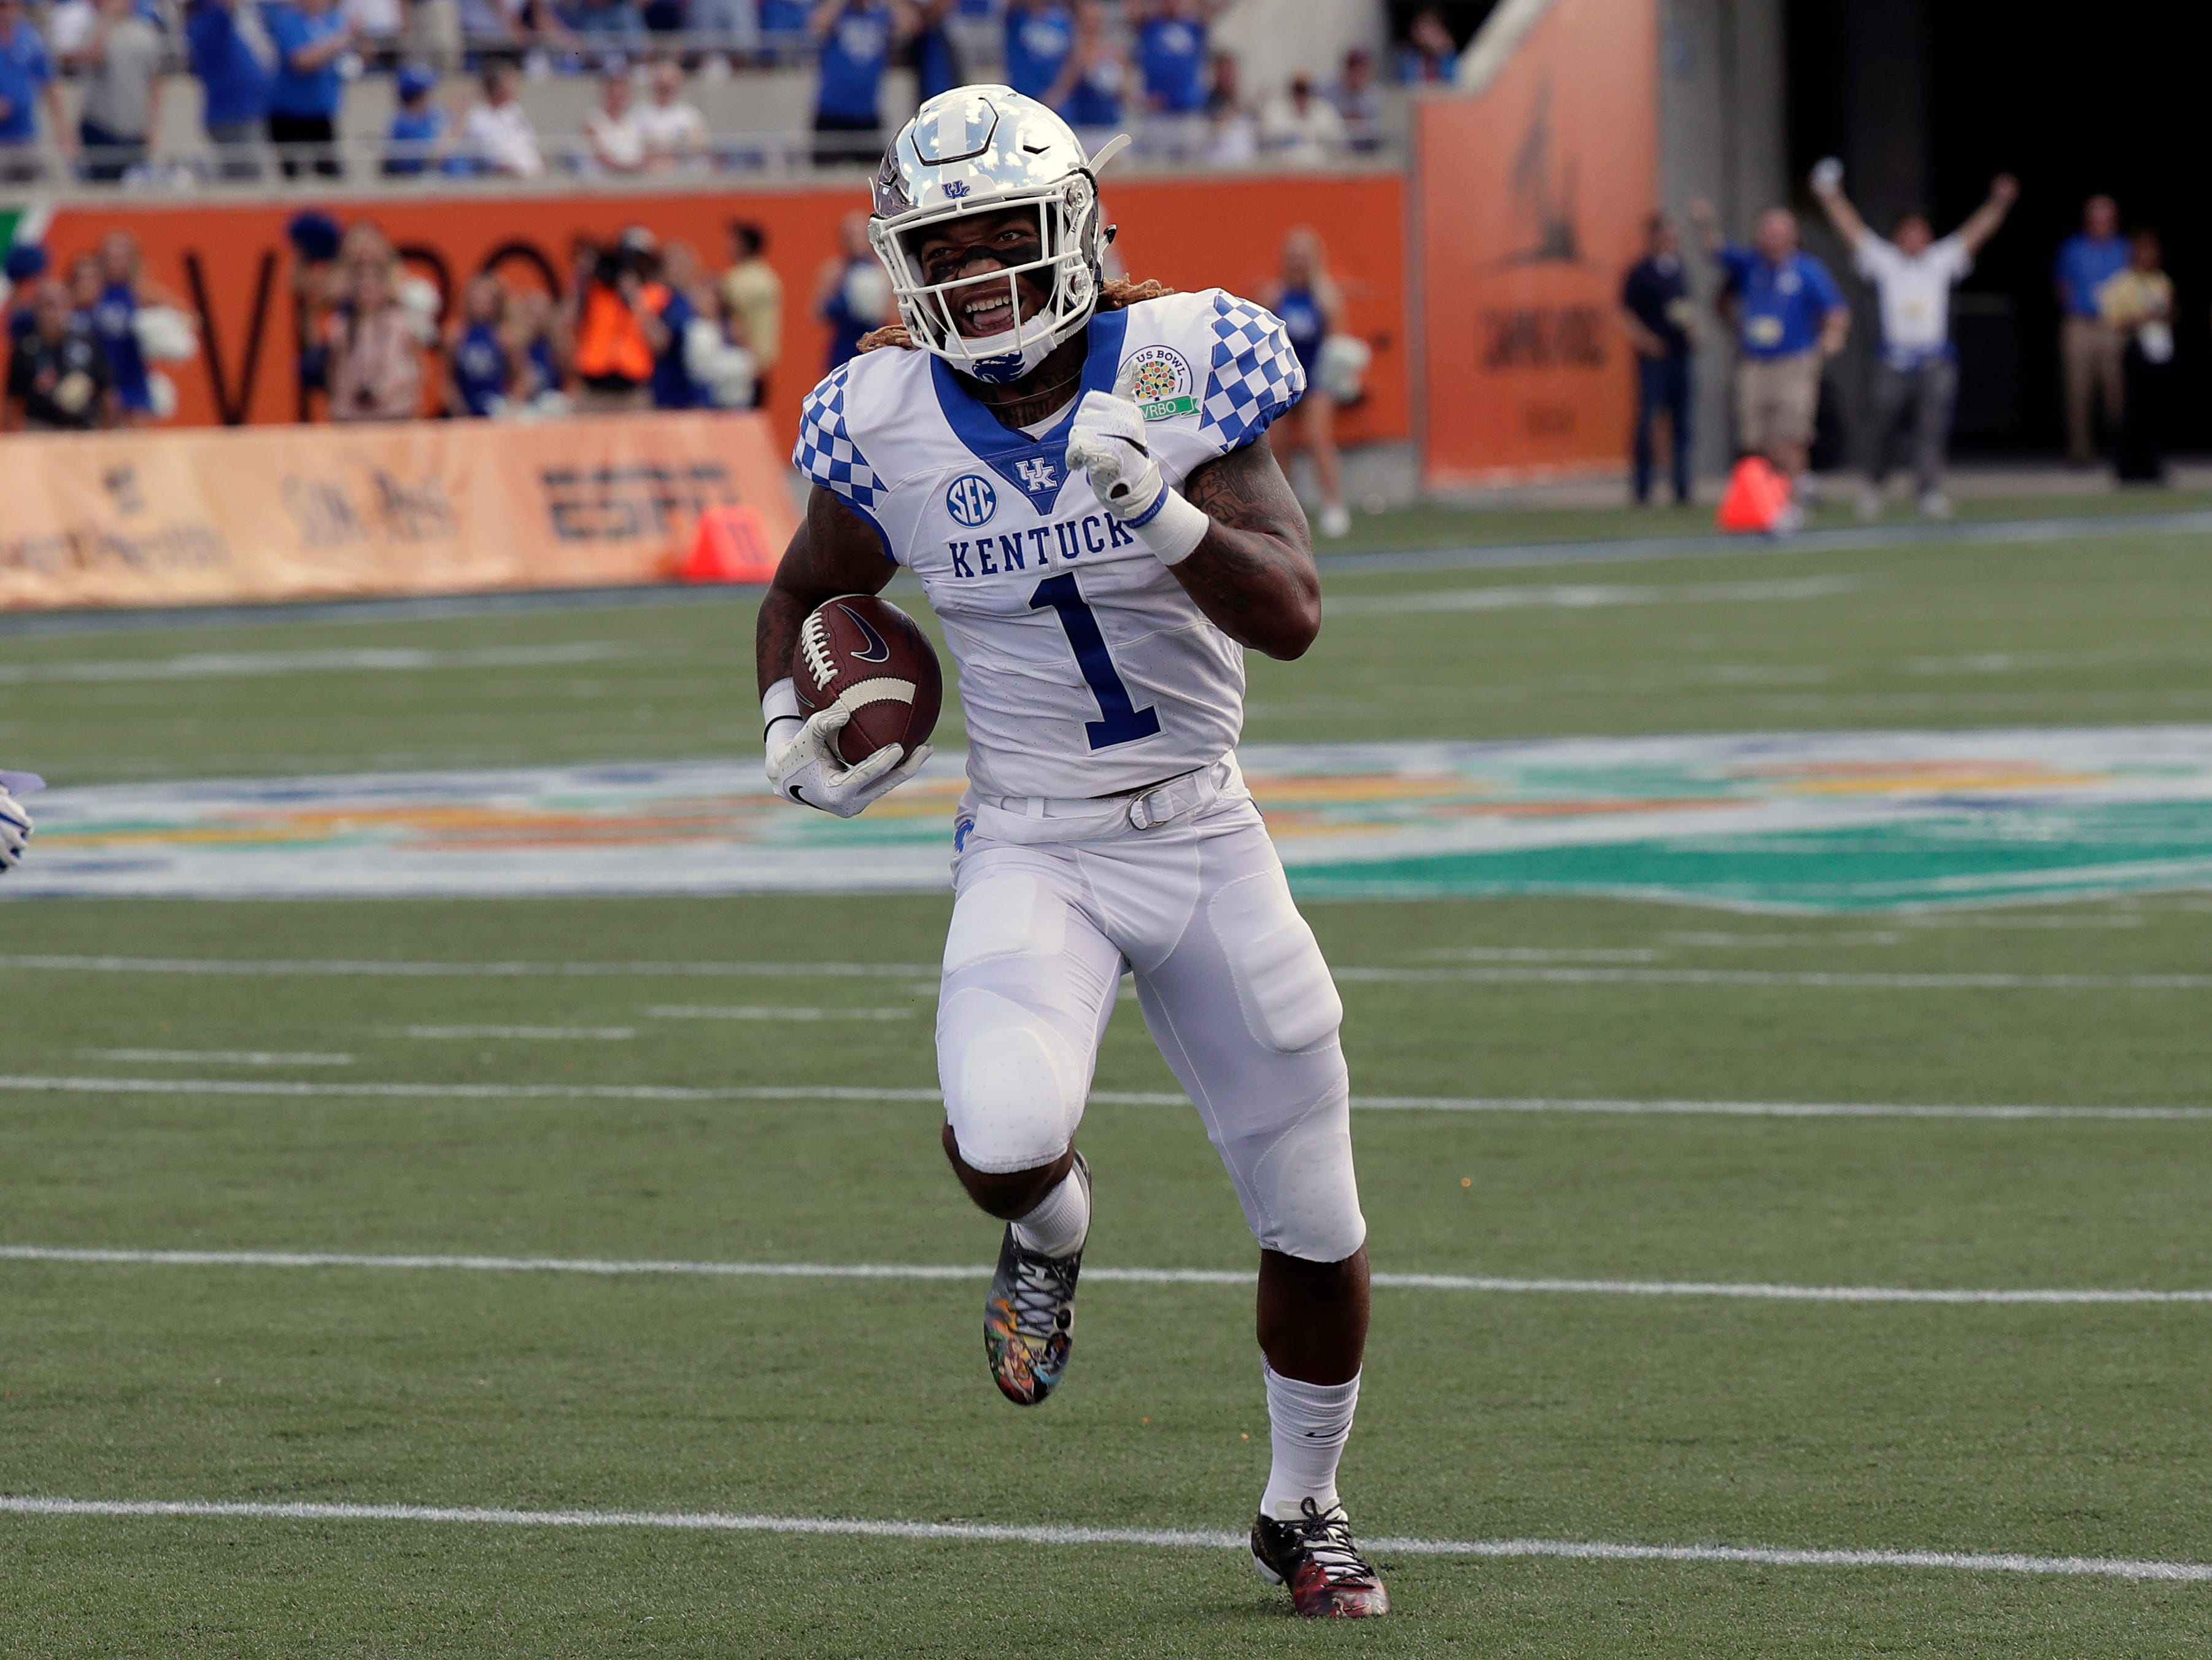 Kentucky's Lynn Bowden Jr. (1) runs a 58-yard touchdown against Penn State on a punt return during the first half of the Citrus Bowl NCAA college football game, Tuesday, Jan. 1, 2019, in Orlando, Fla. (AP Photo/John Raoux)